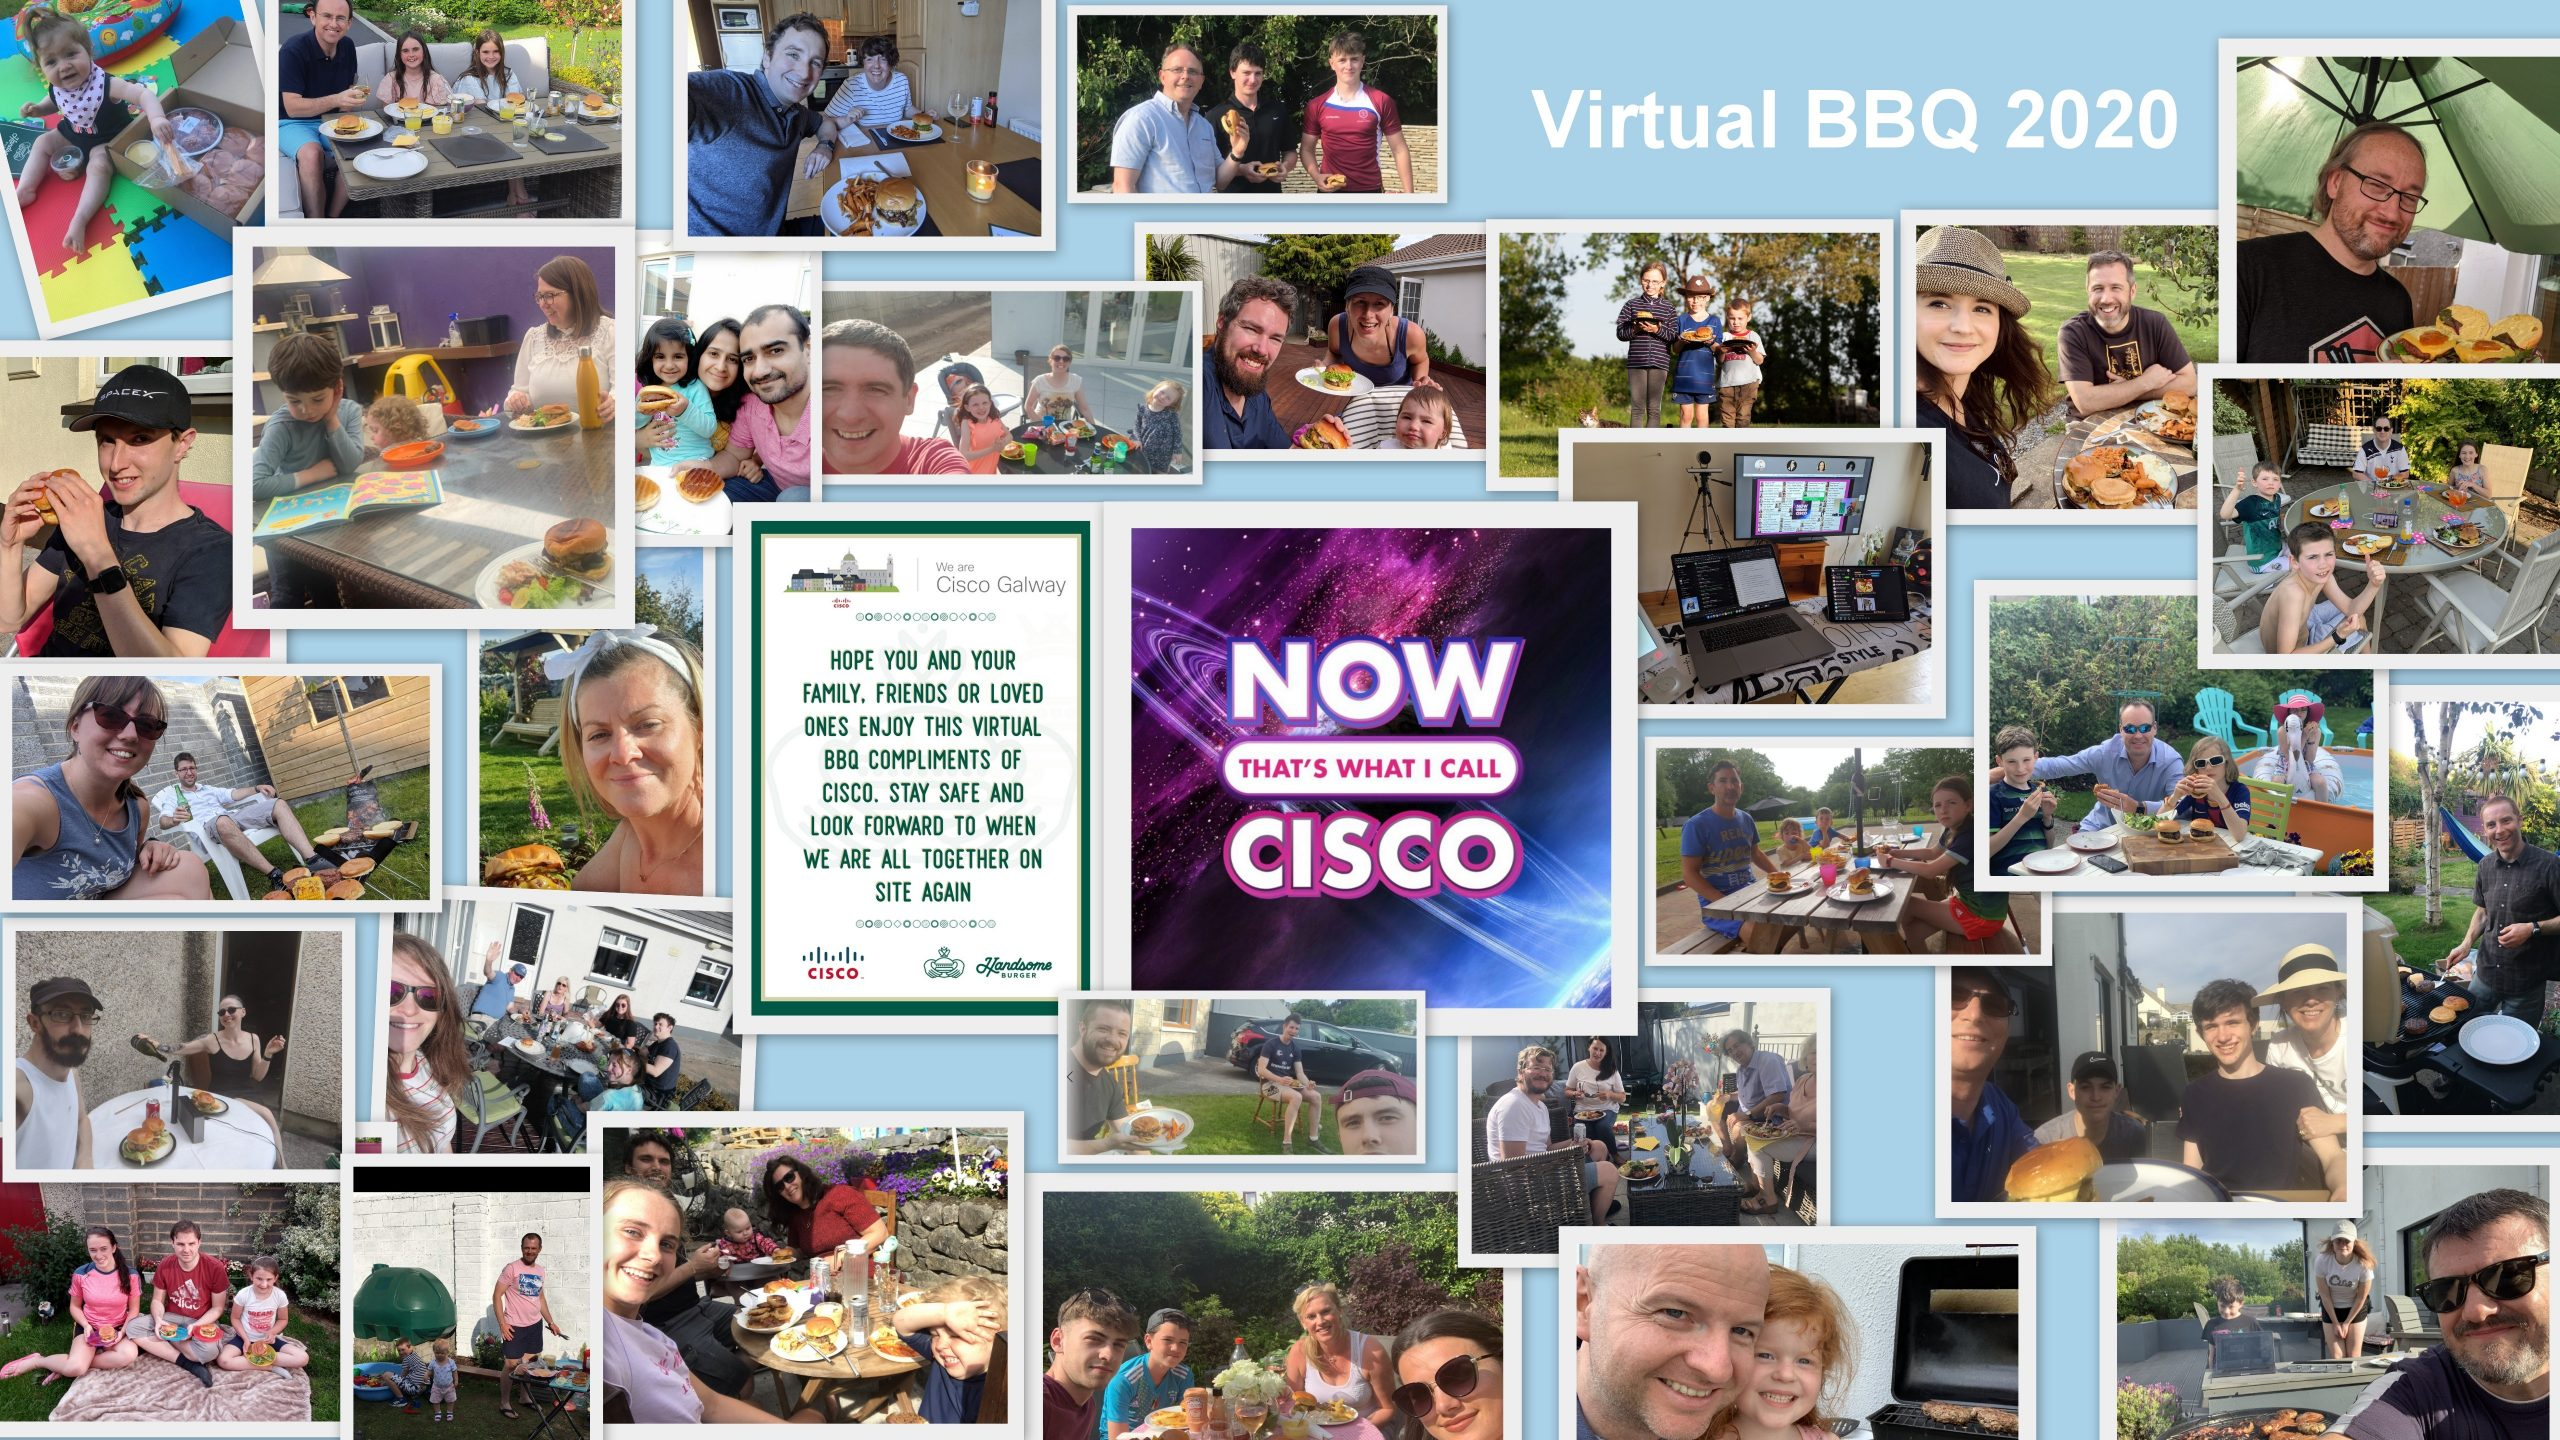 Apart from Cisco Galway together